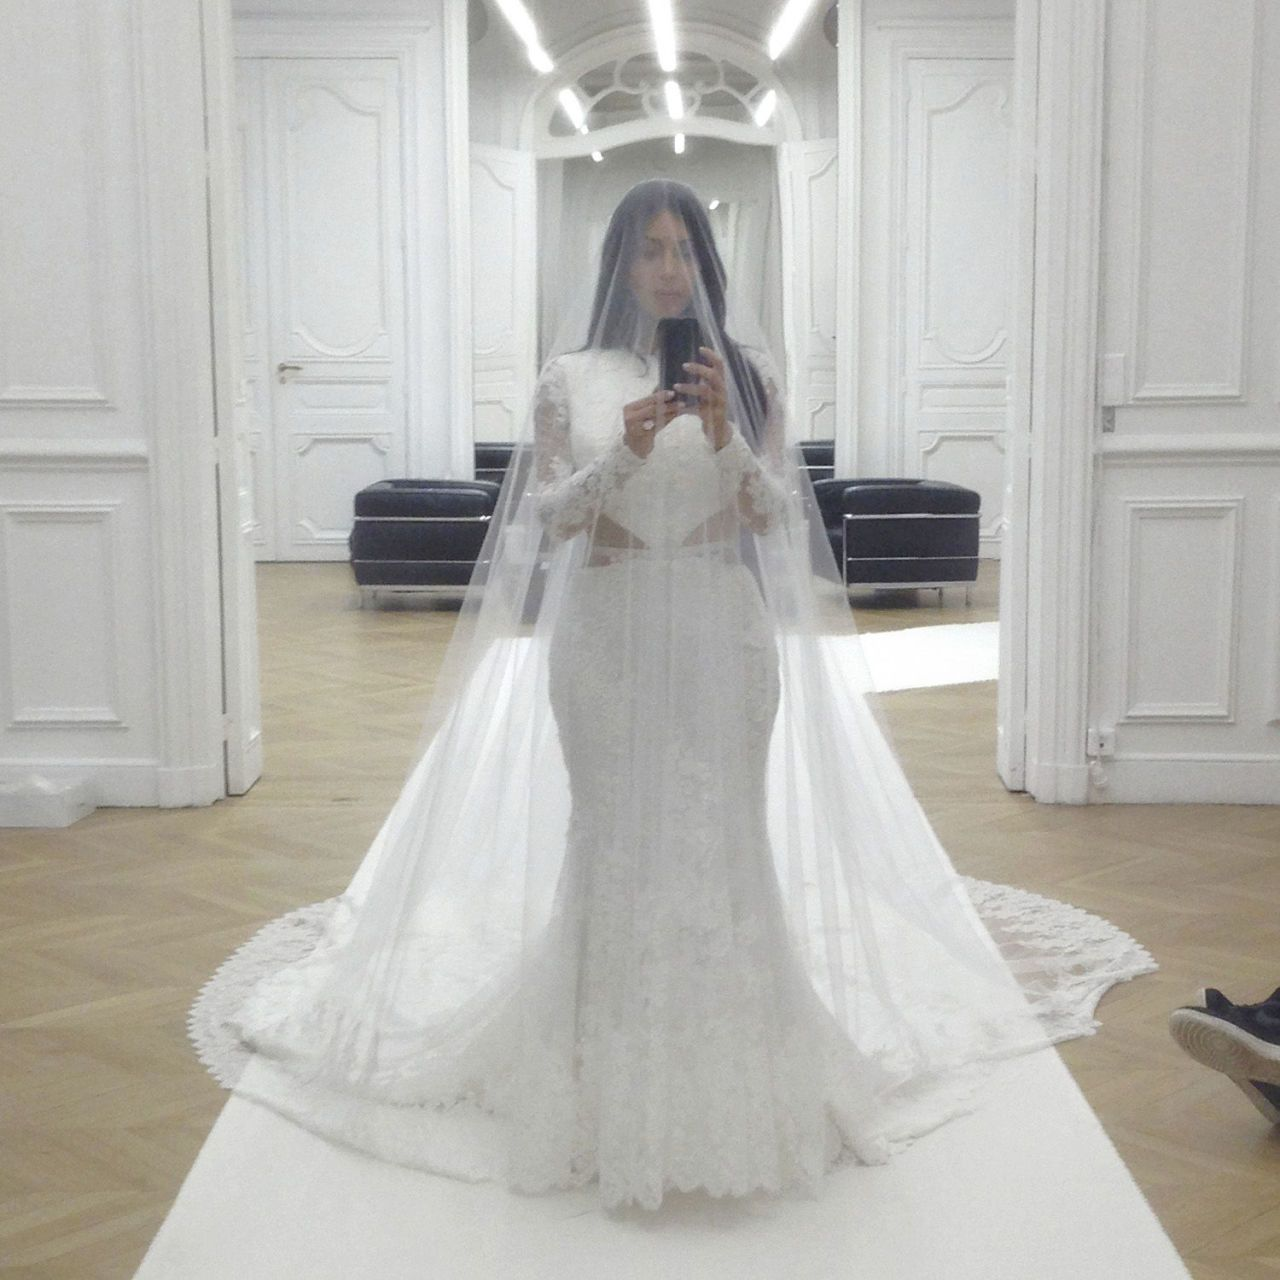 A Day In The Life Of Kim Kardashian First Look At Kardashian's Book Selfies 'selfish': Kim Kardashian Wedding Dress Replica At Reisefeber.org